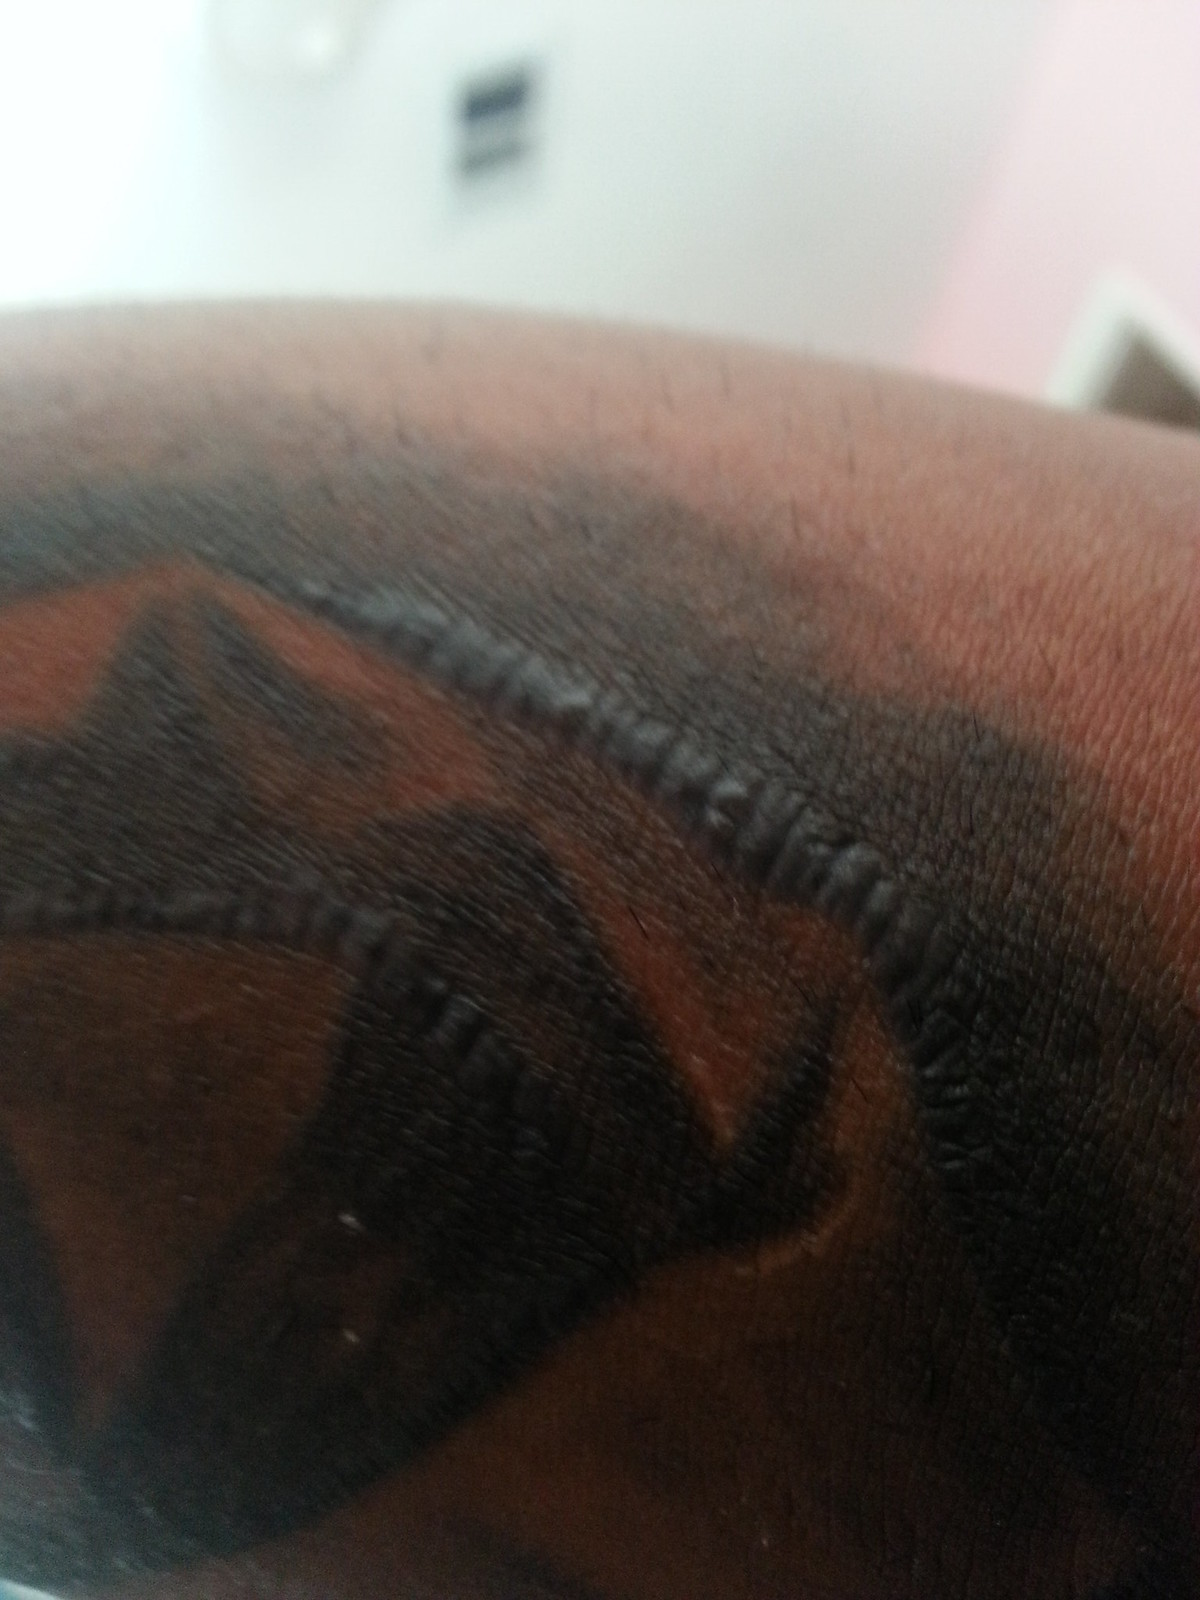 1 week old tattoo scab fell off left scar pic inside for Raised tattoo after healing